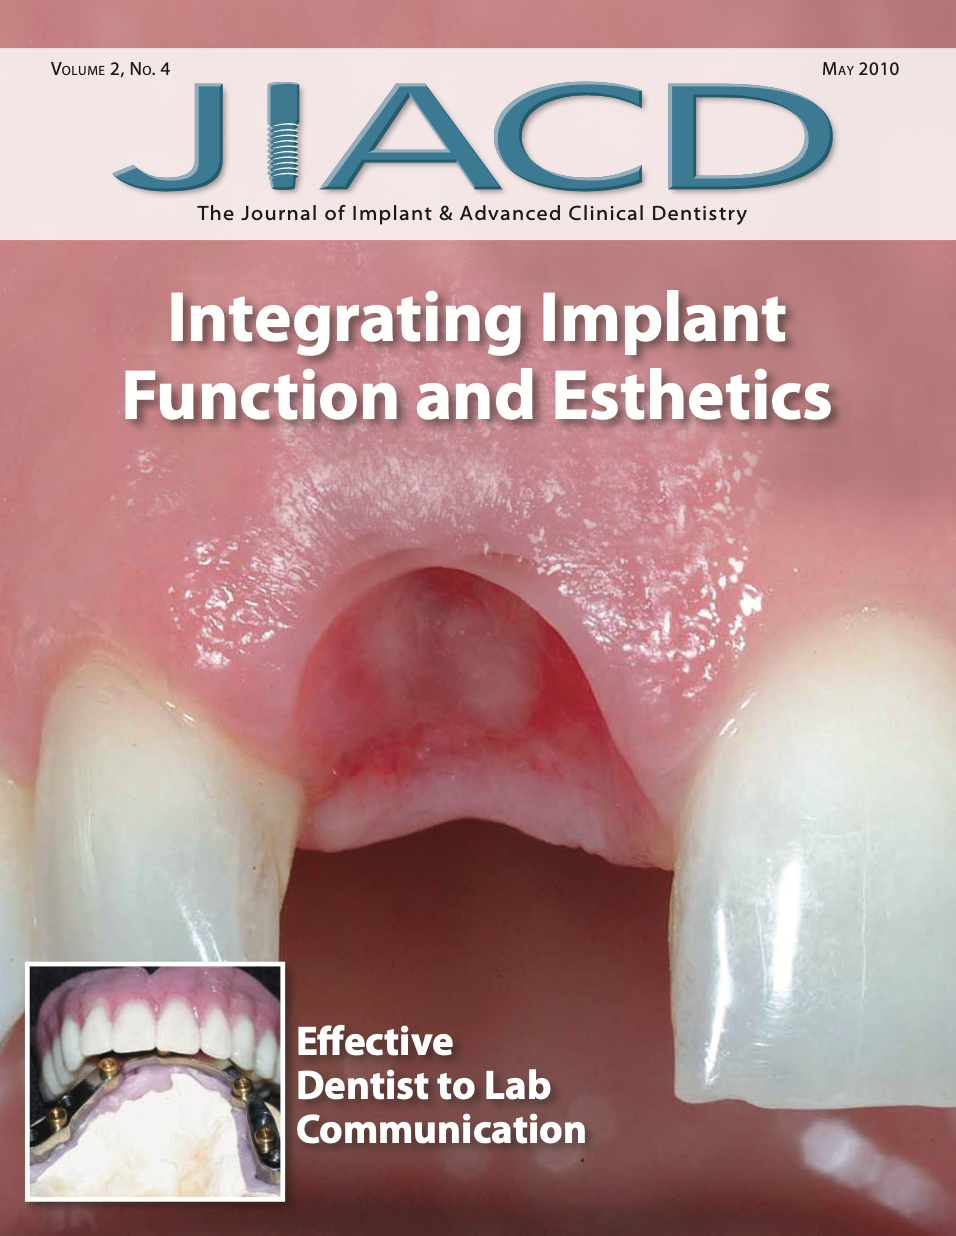 Integrating Implant Function and Esthetics